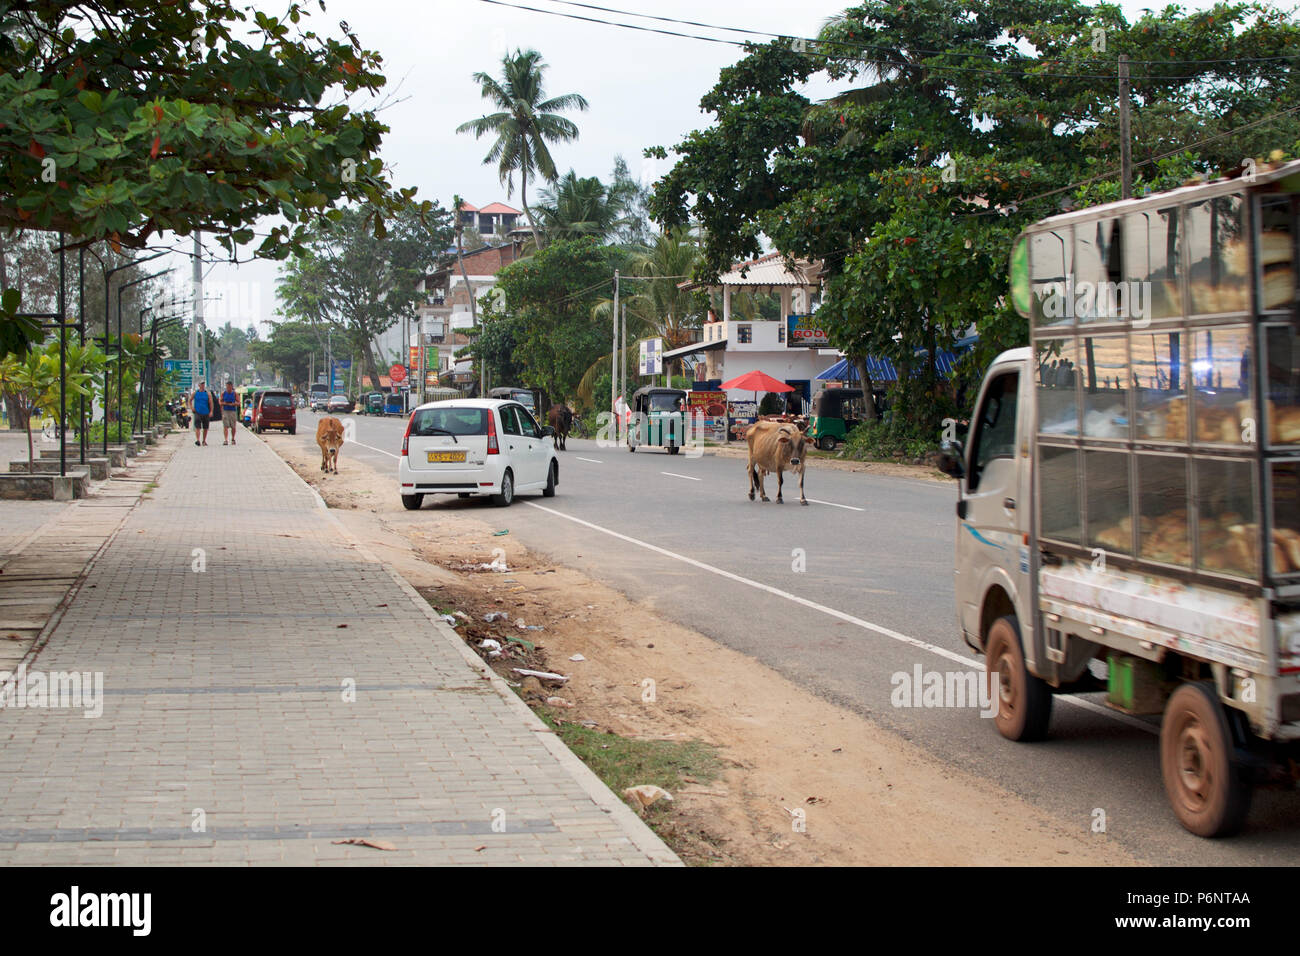 Weligama, Sri Lanka, 2017-12-19: Dangerous situation - cows randomly cross road among traffic cars. Ordinary day in Indian city. Concept of safety. - Stock Image